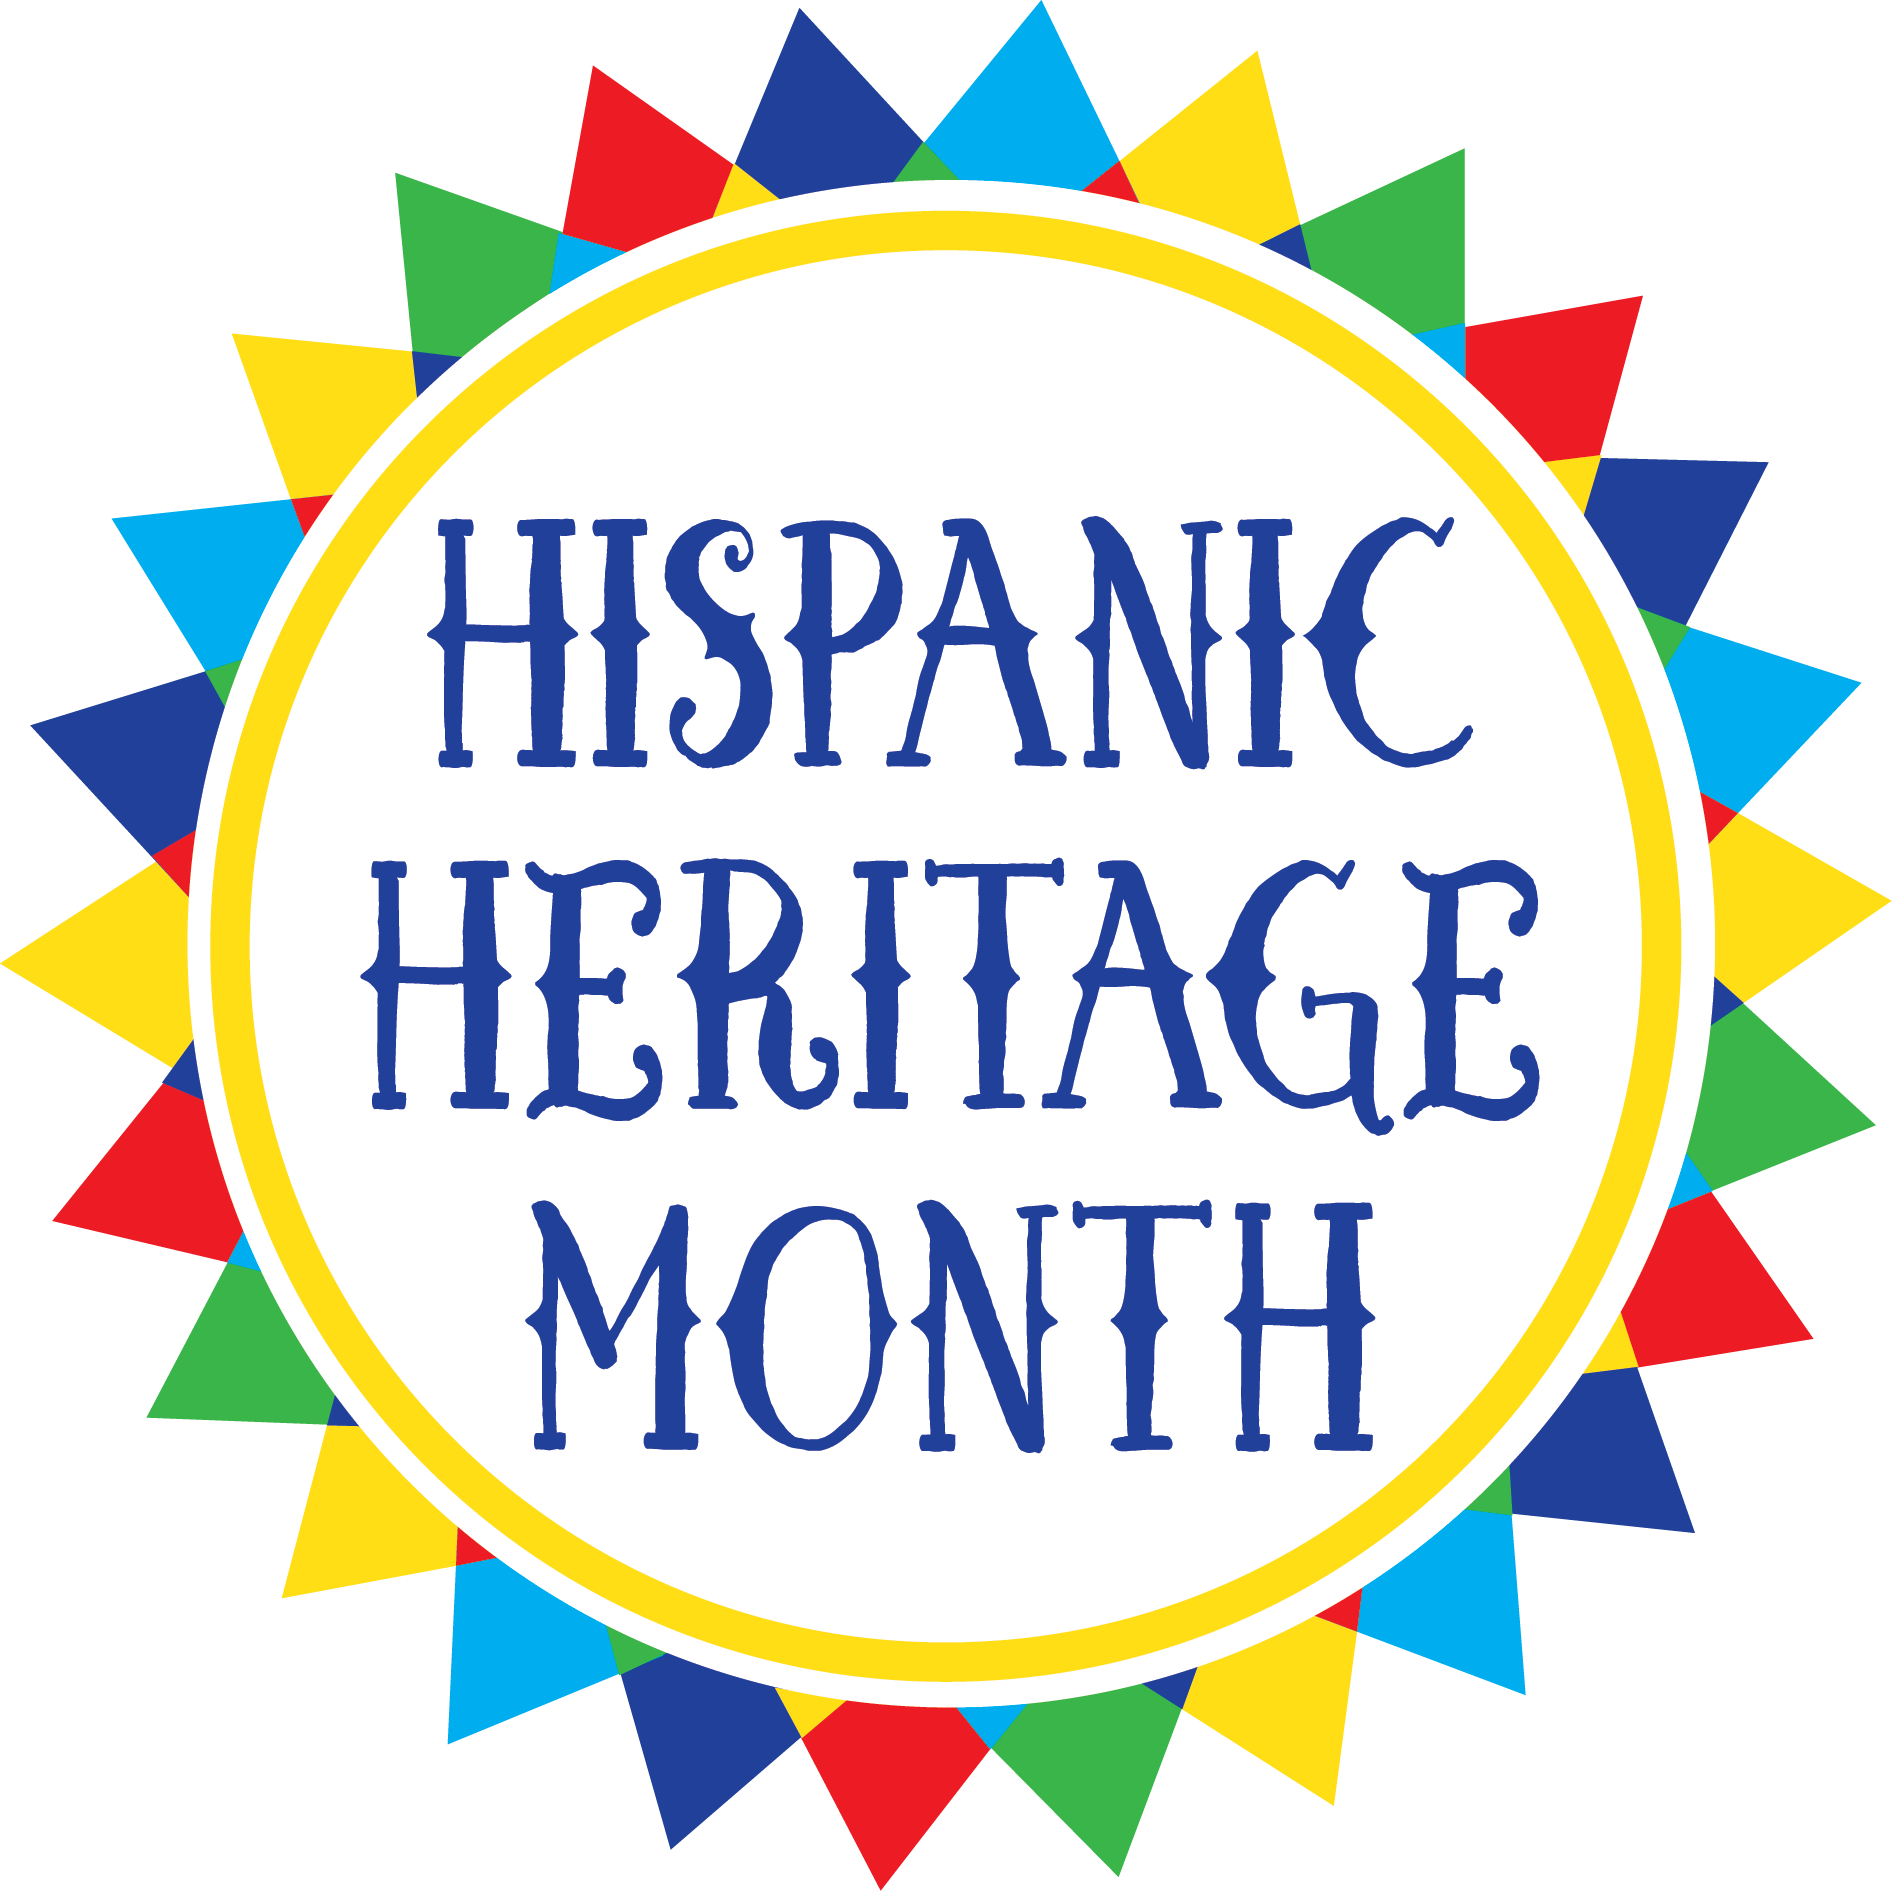 Conference clipart monthly meeting. Gtc news celebrate hispanic